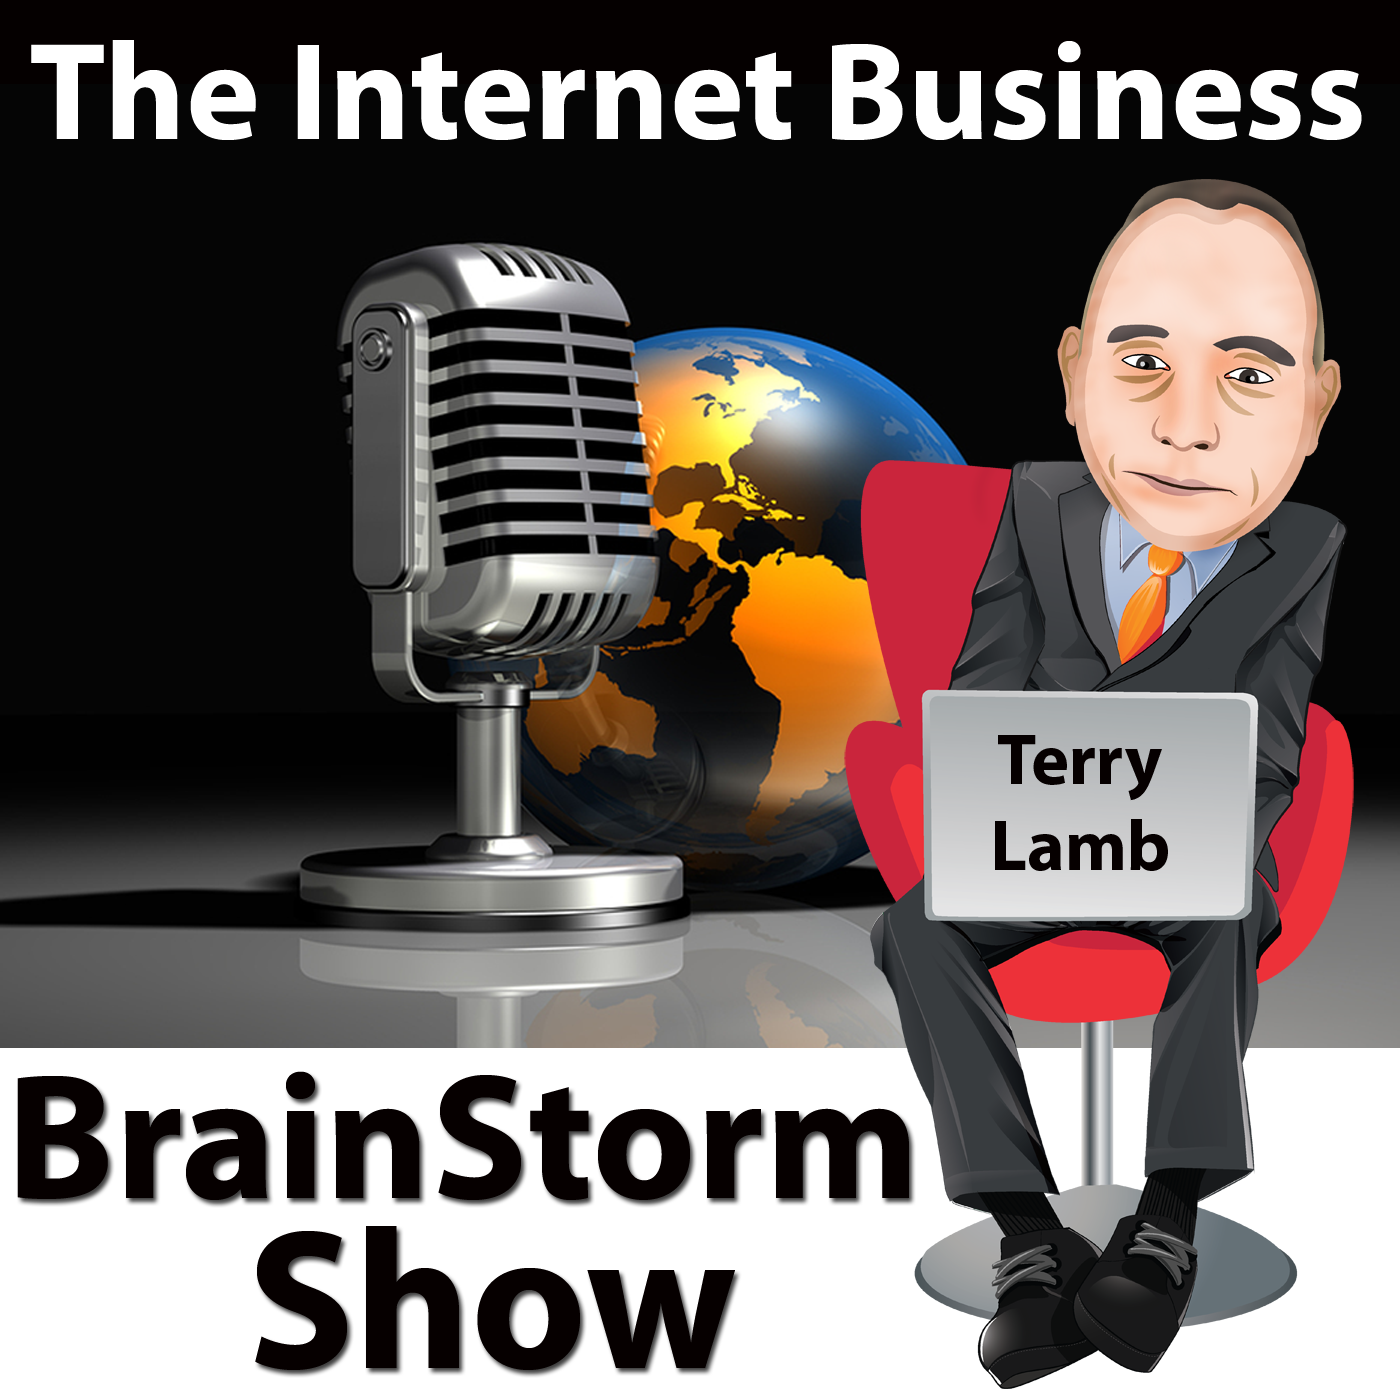 The Internet Business Brainstorm Show